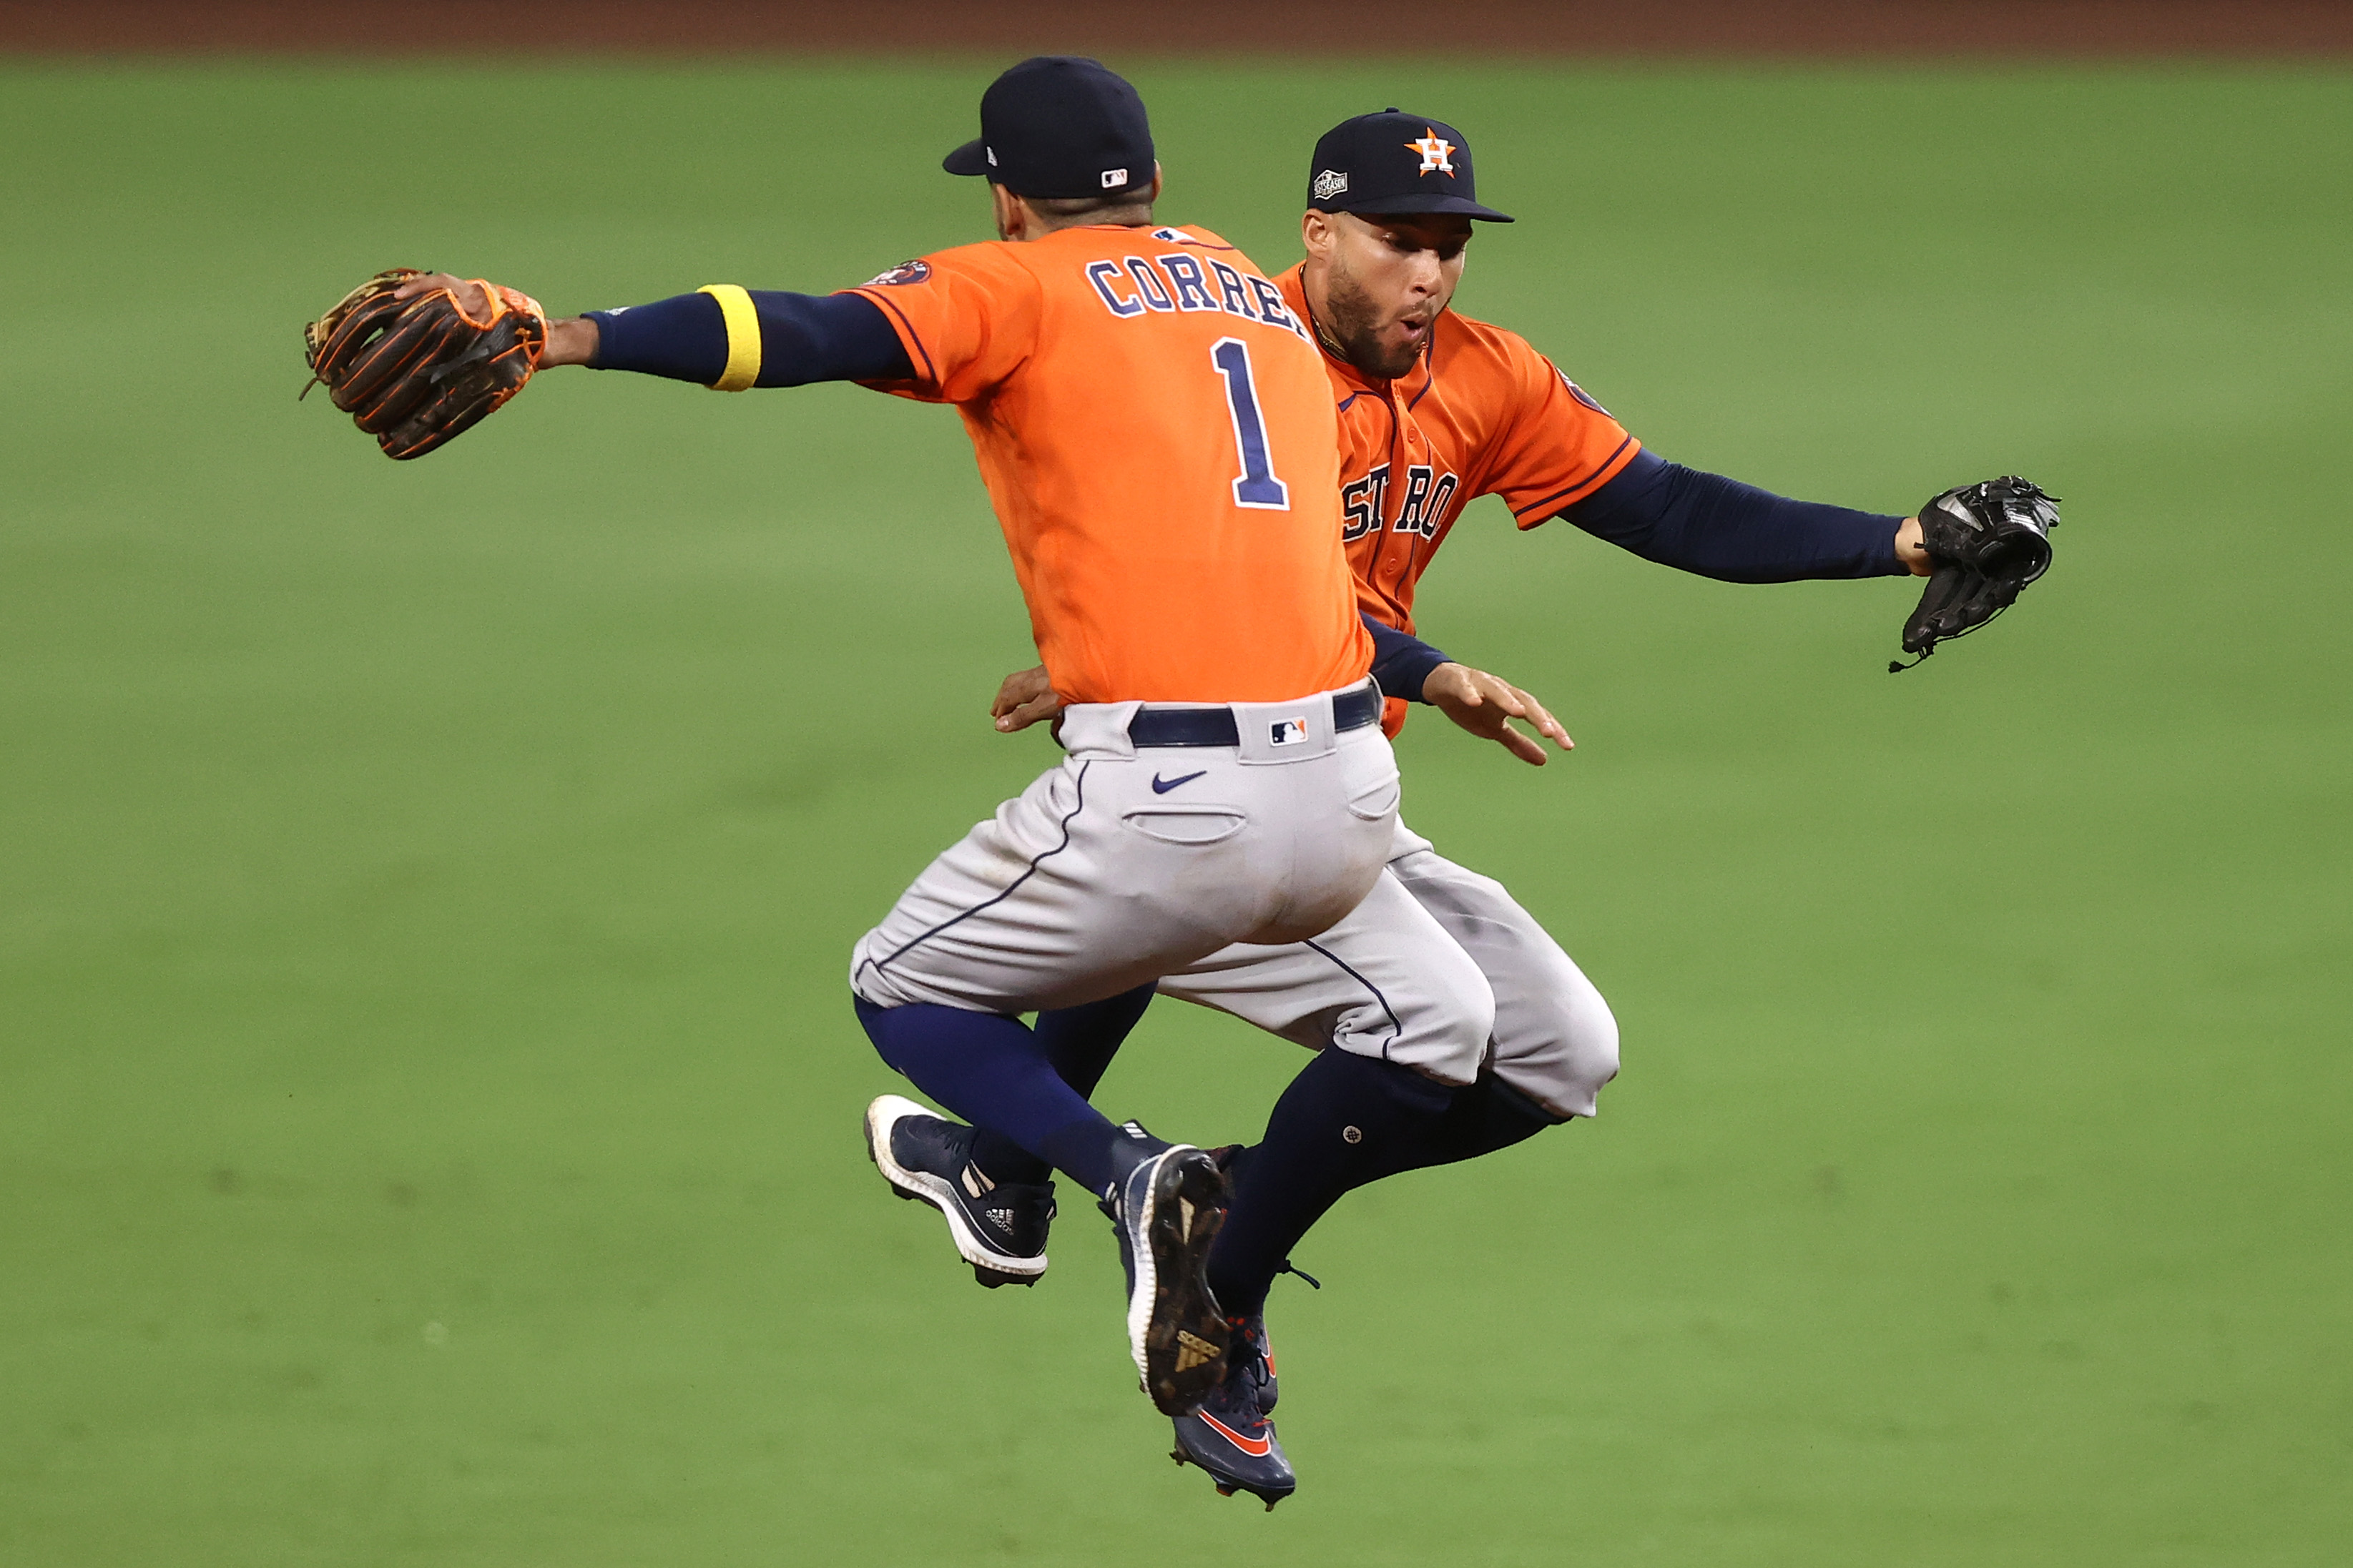 The Houston Astros continue to frustrate their haters.